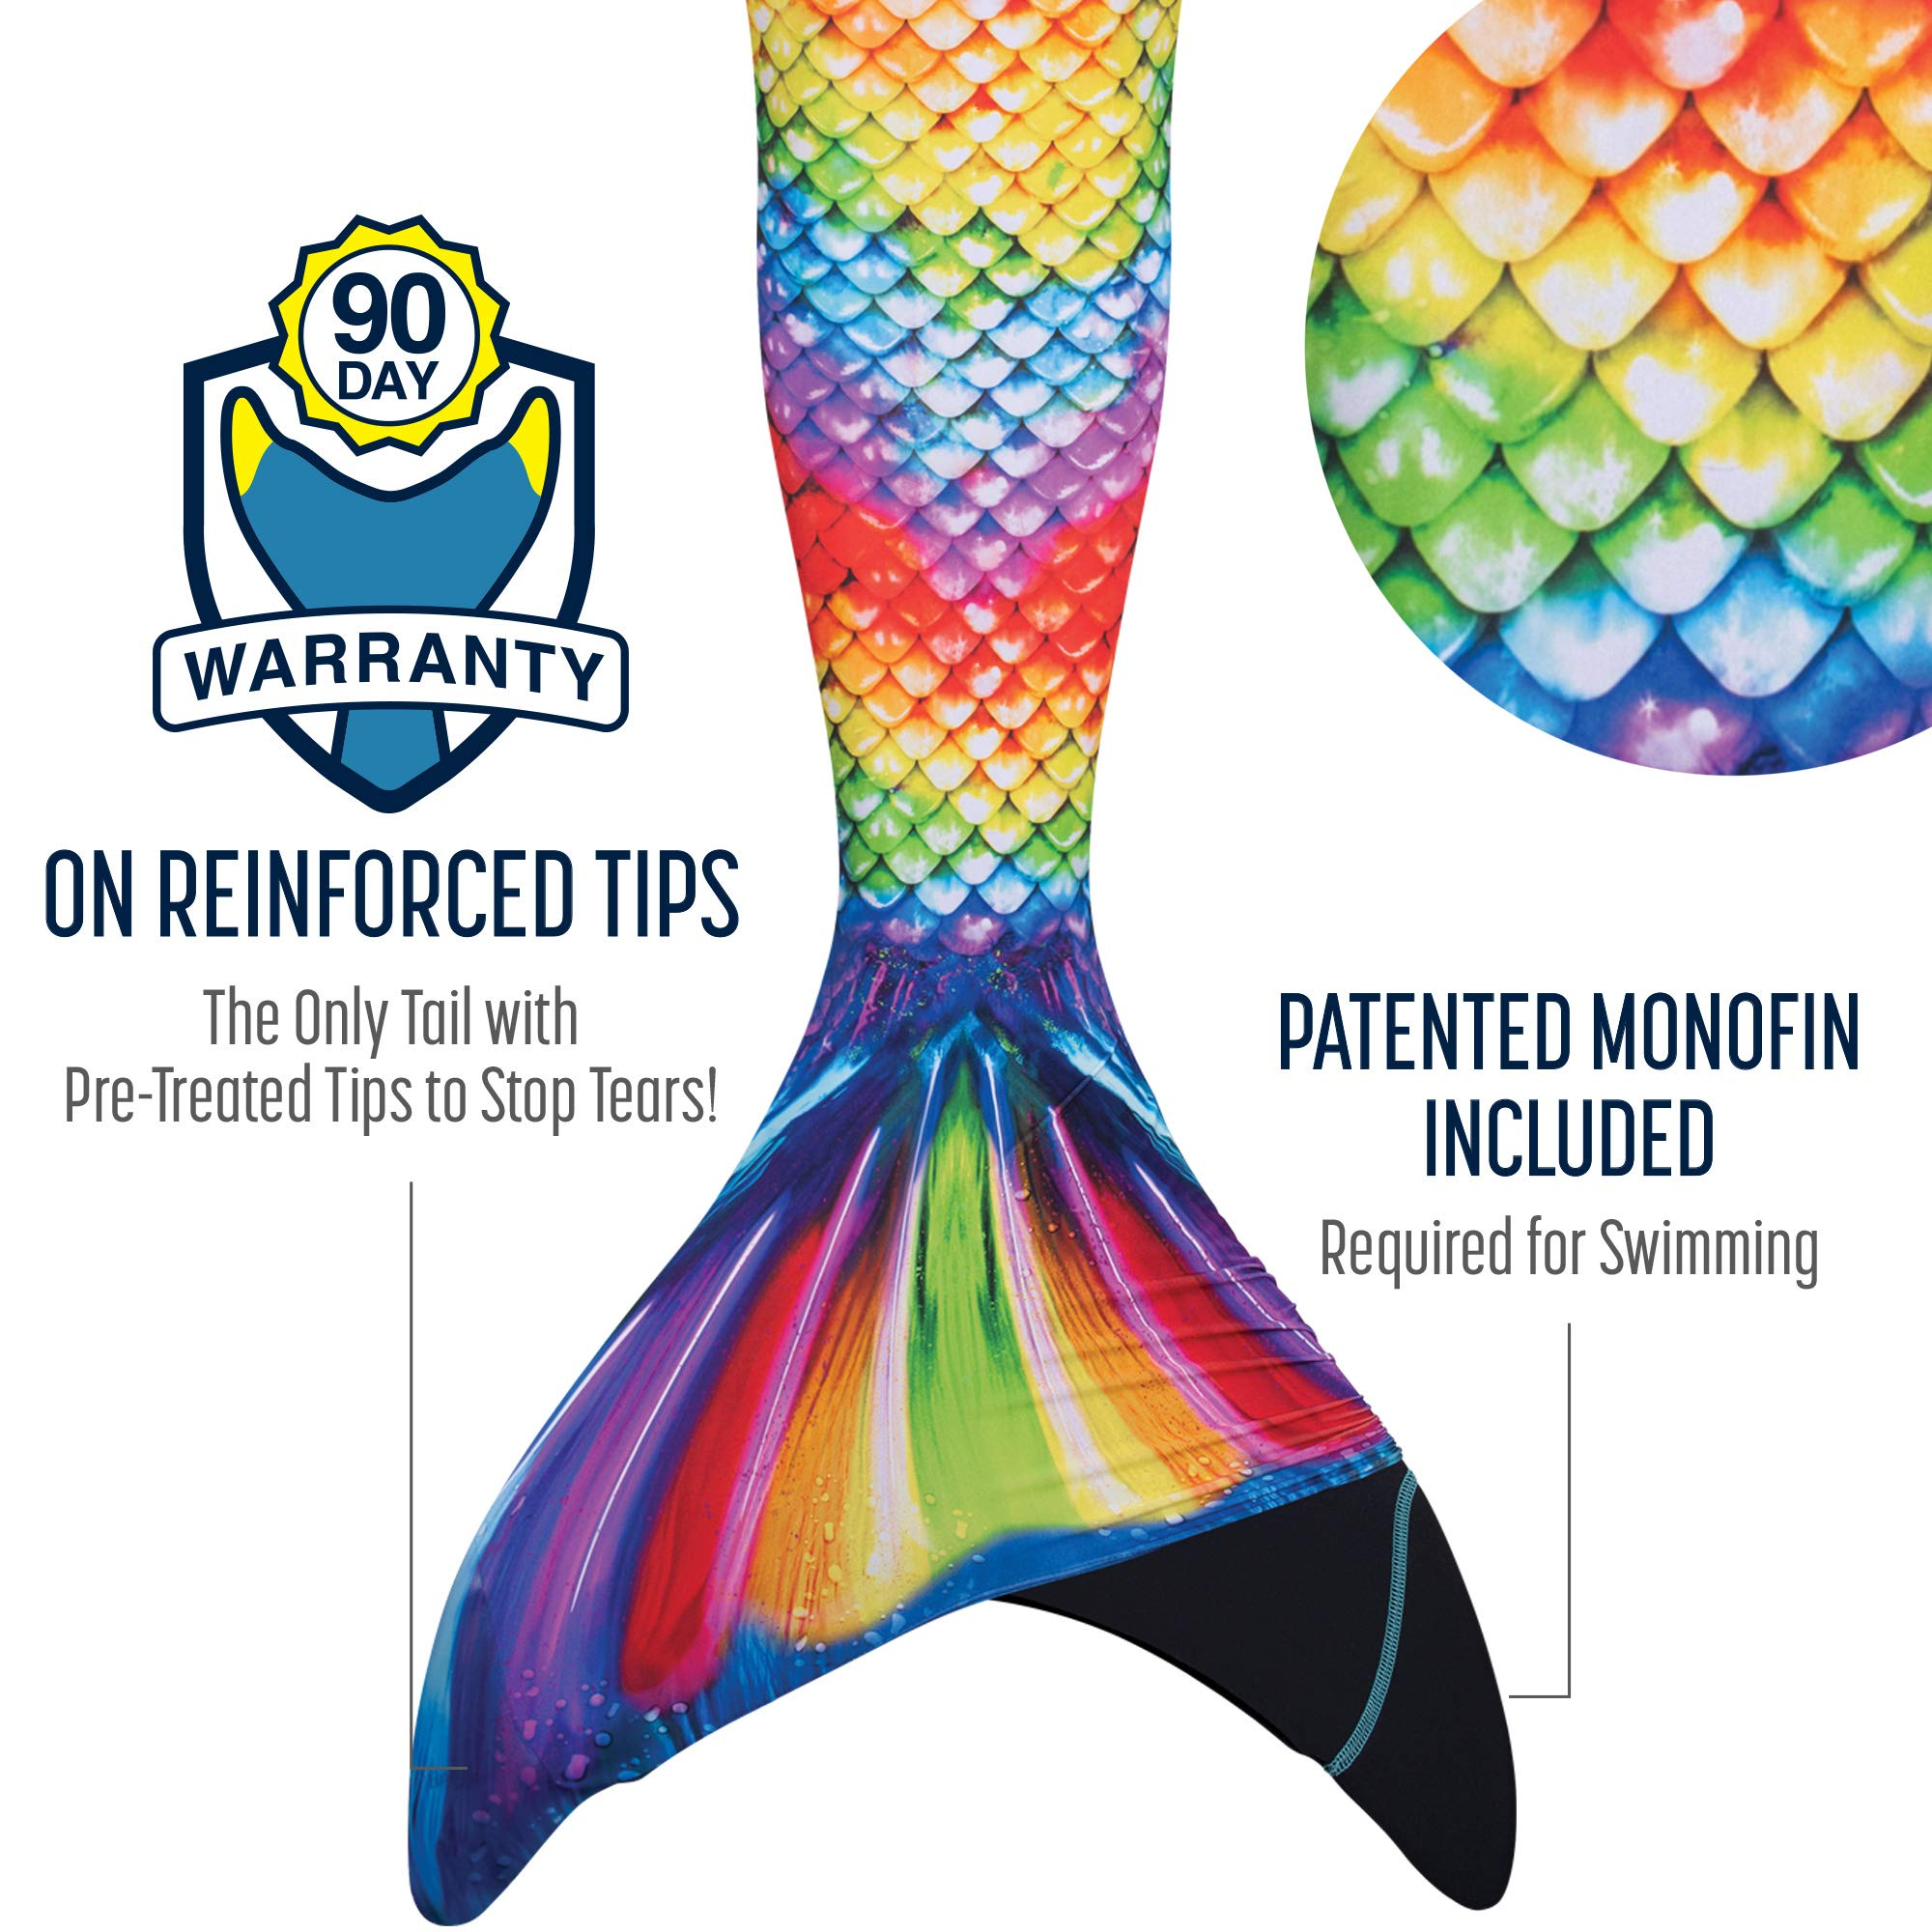 Fin Fun Mermaid Tail, Reinforced Tips, with Monofin, New Rainbow Reef, Adult XS by Fin Fun (Image #2)